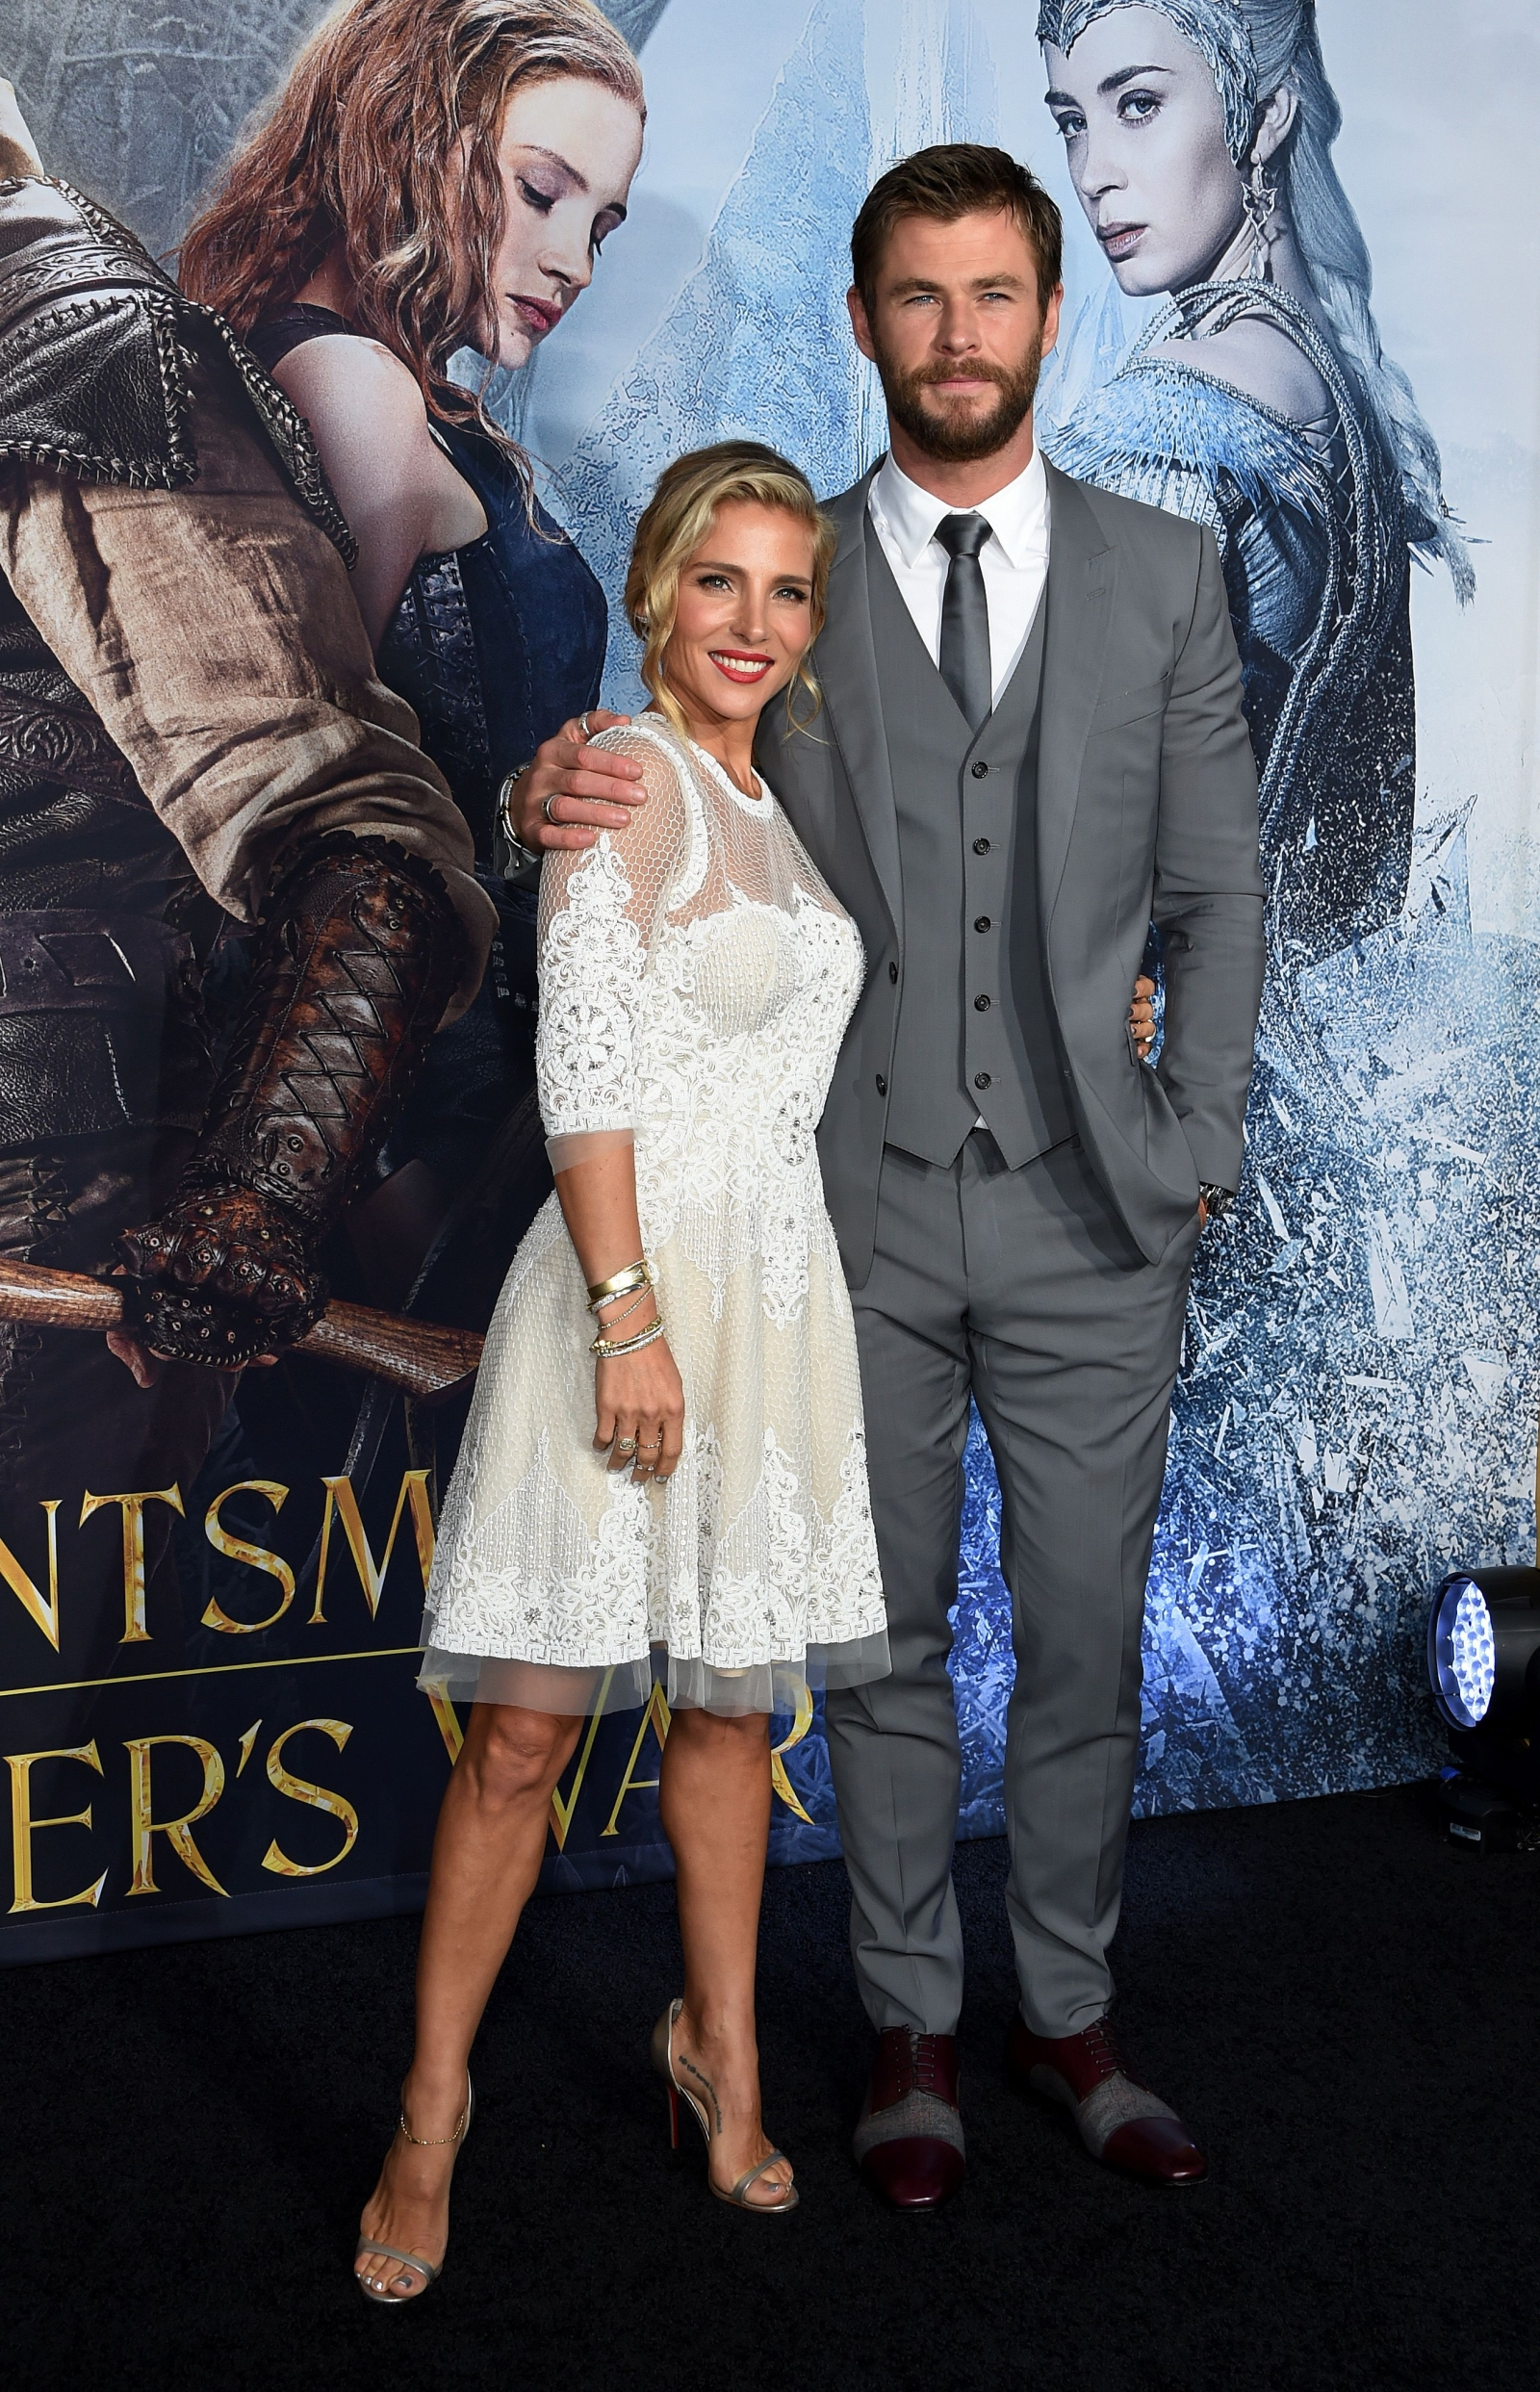 Chris Hemsworth and Elsa Pataki